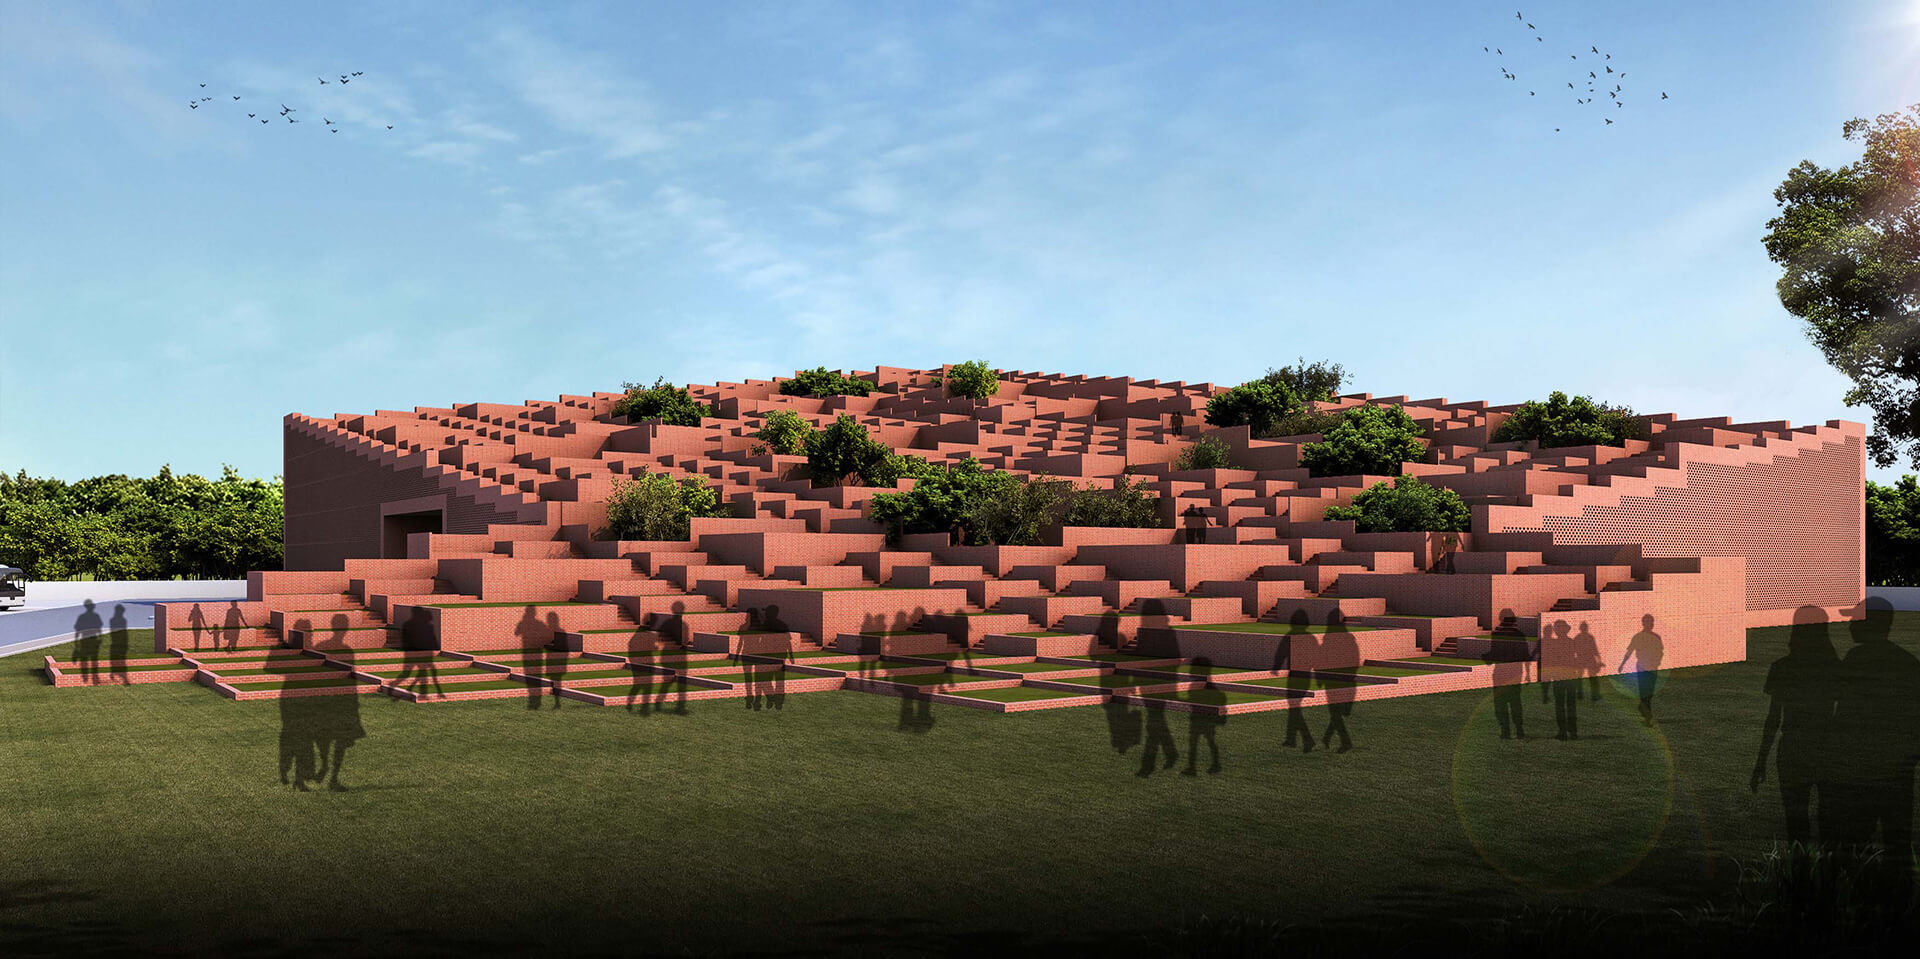 Stepped terraces at the Prestige University, Indore | Prestige University in Indore by Sanjay Puri Architects | STIRworld